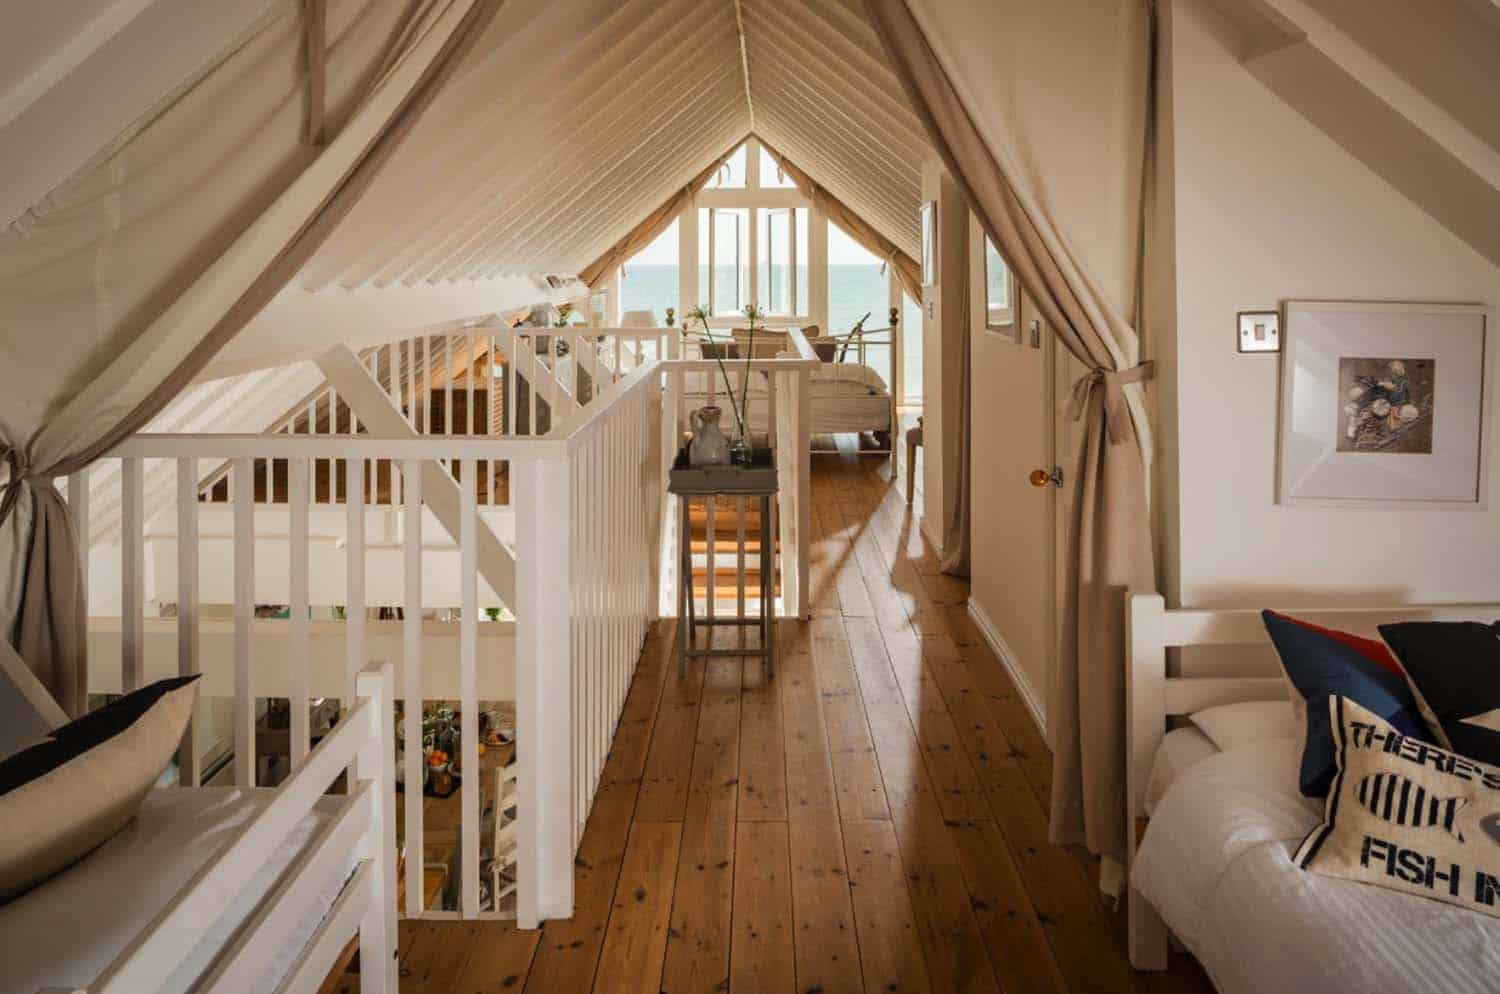 Barefoot Beach House-East Sussex-21-1 Kindesign